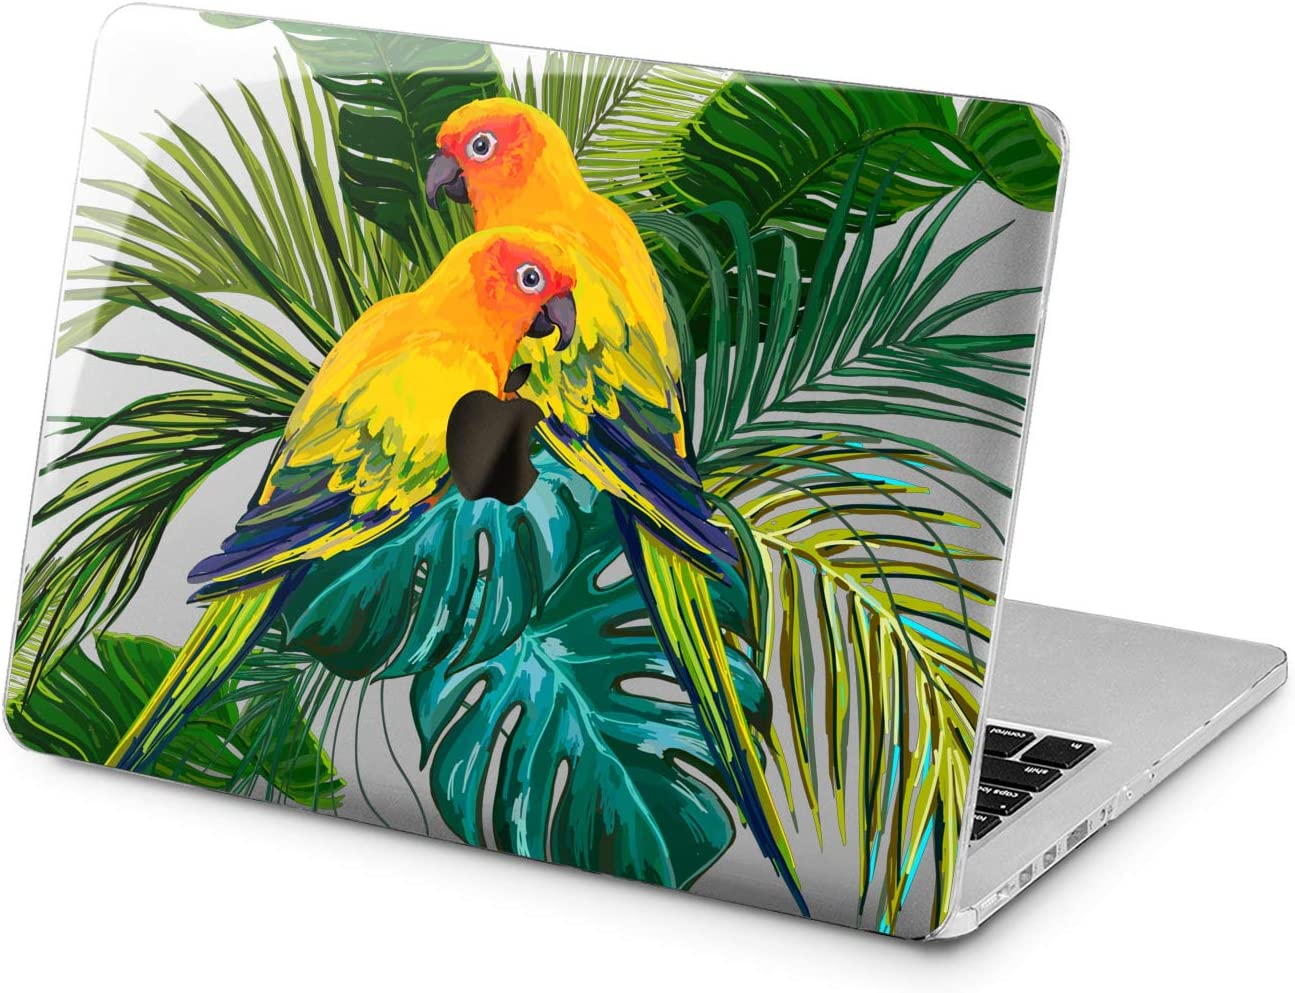 "Cavka Hard Shell Case for Apple MacBook Pro 13"" 2019 15"" 2018 Air 13"" 2020 Retina 2015 Mac 11"" Mac 12"" Leaves Print Tropical Laptop Design Birds Painted Plastic Cover Cute Palm Parrots Protective"